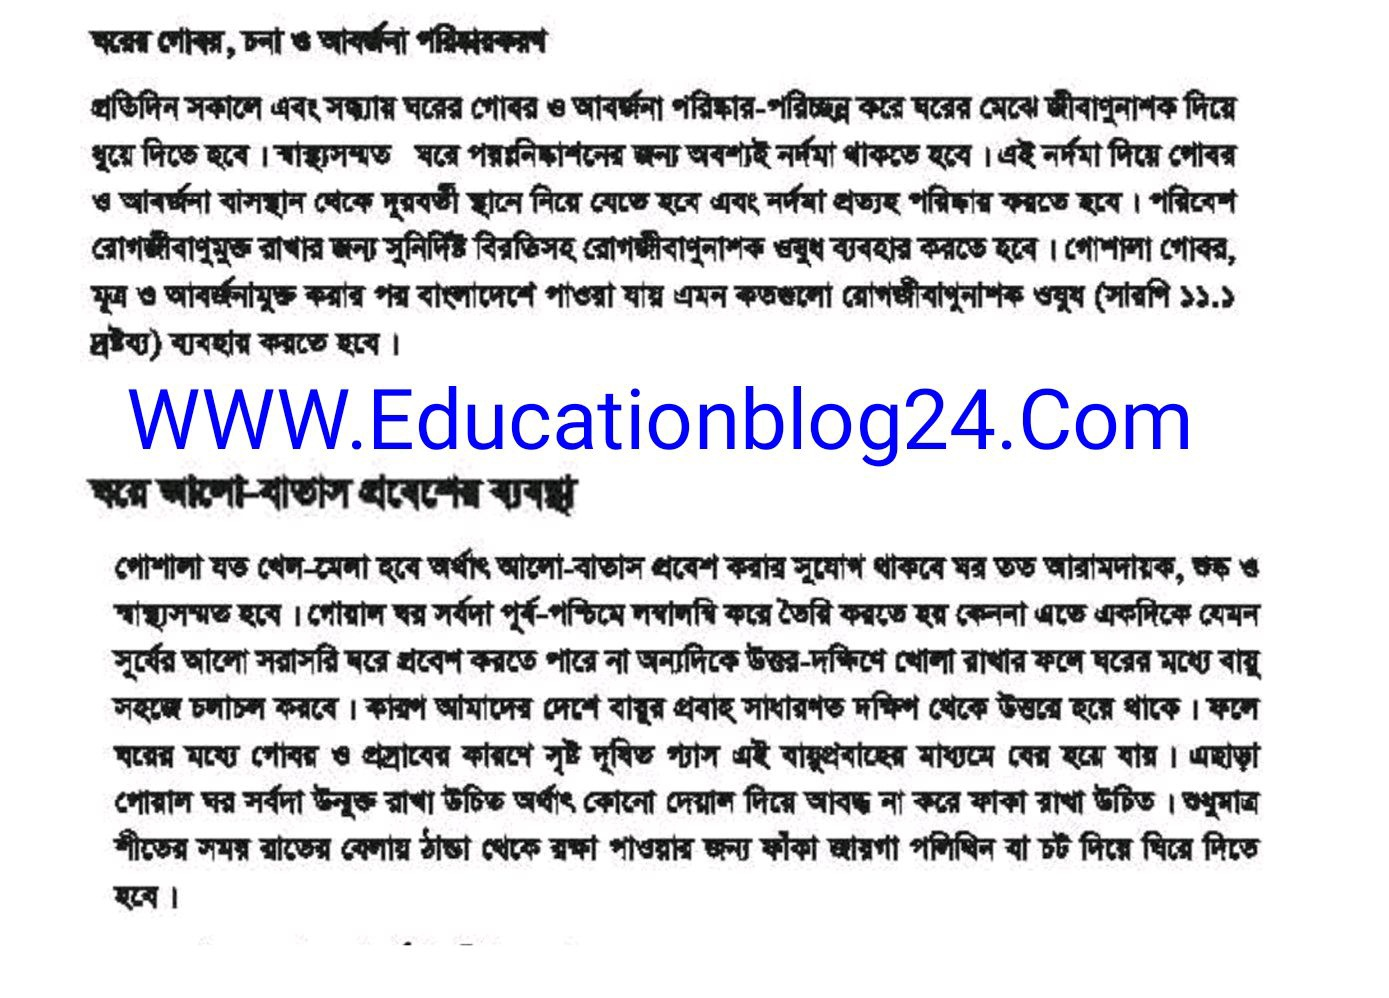 SSC / Dakhil (Vocational) Livestock Rearing and Farming Assignment Answer 2021 15